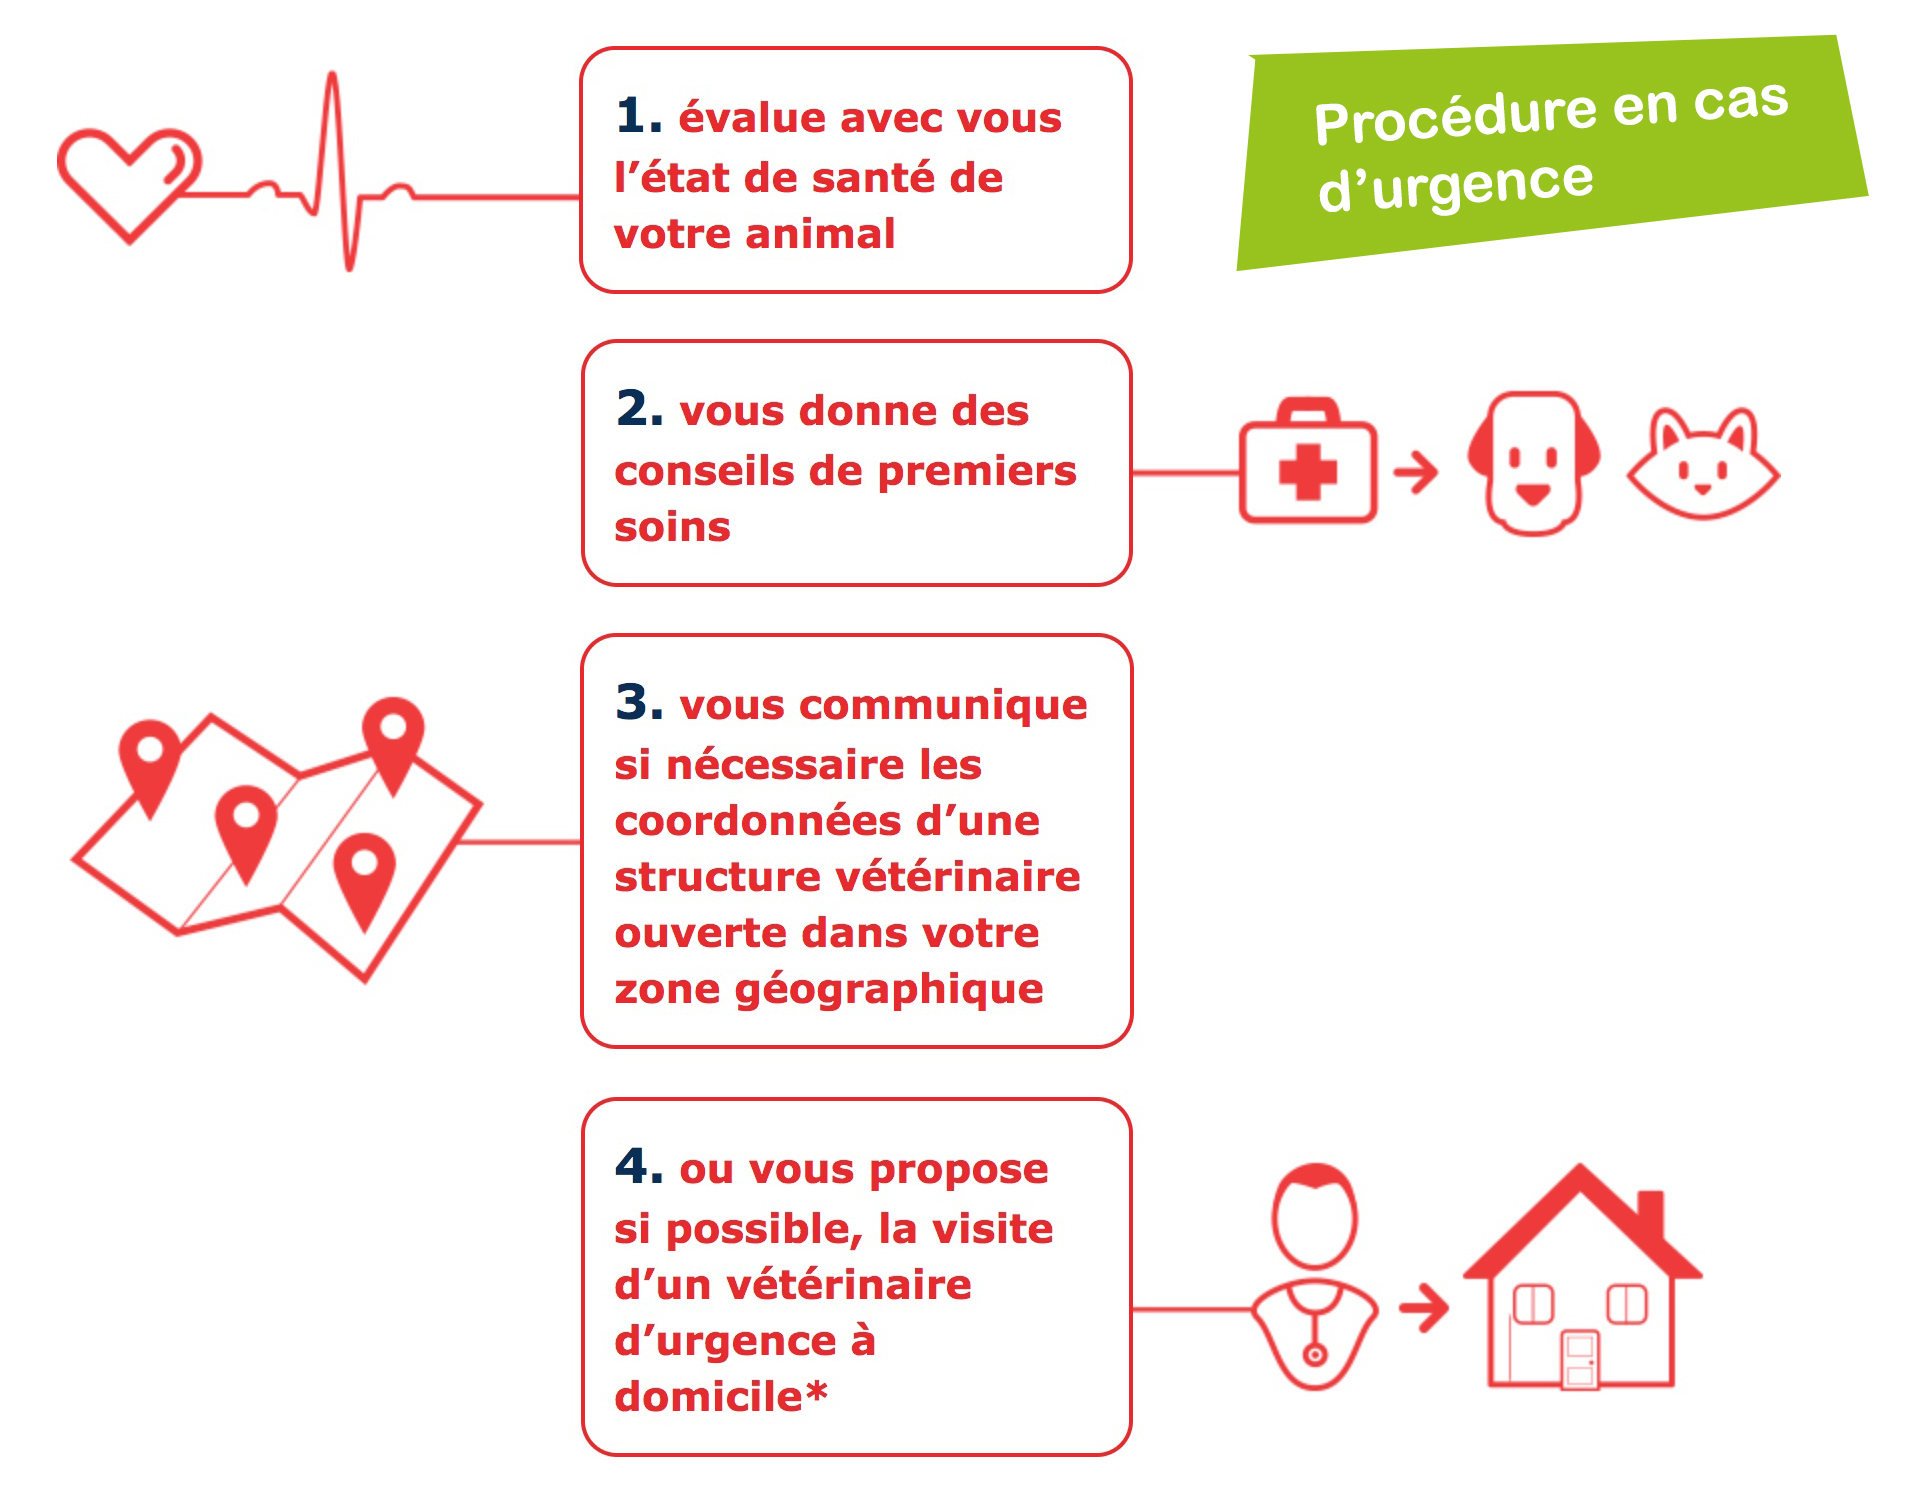 santevet emergency explications